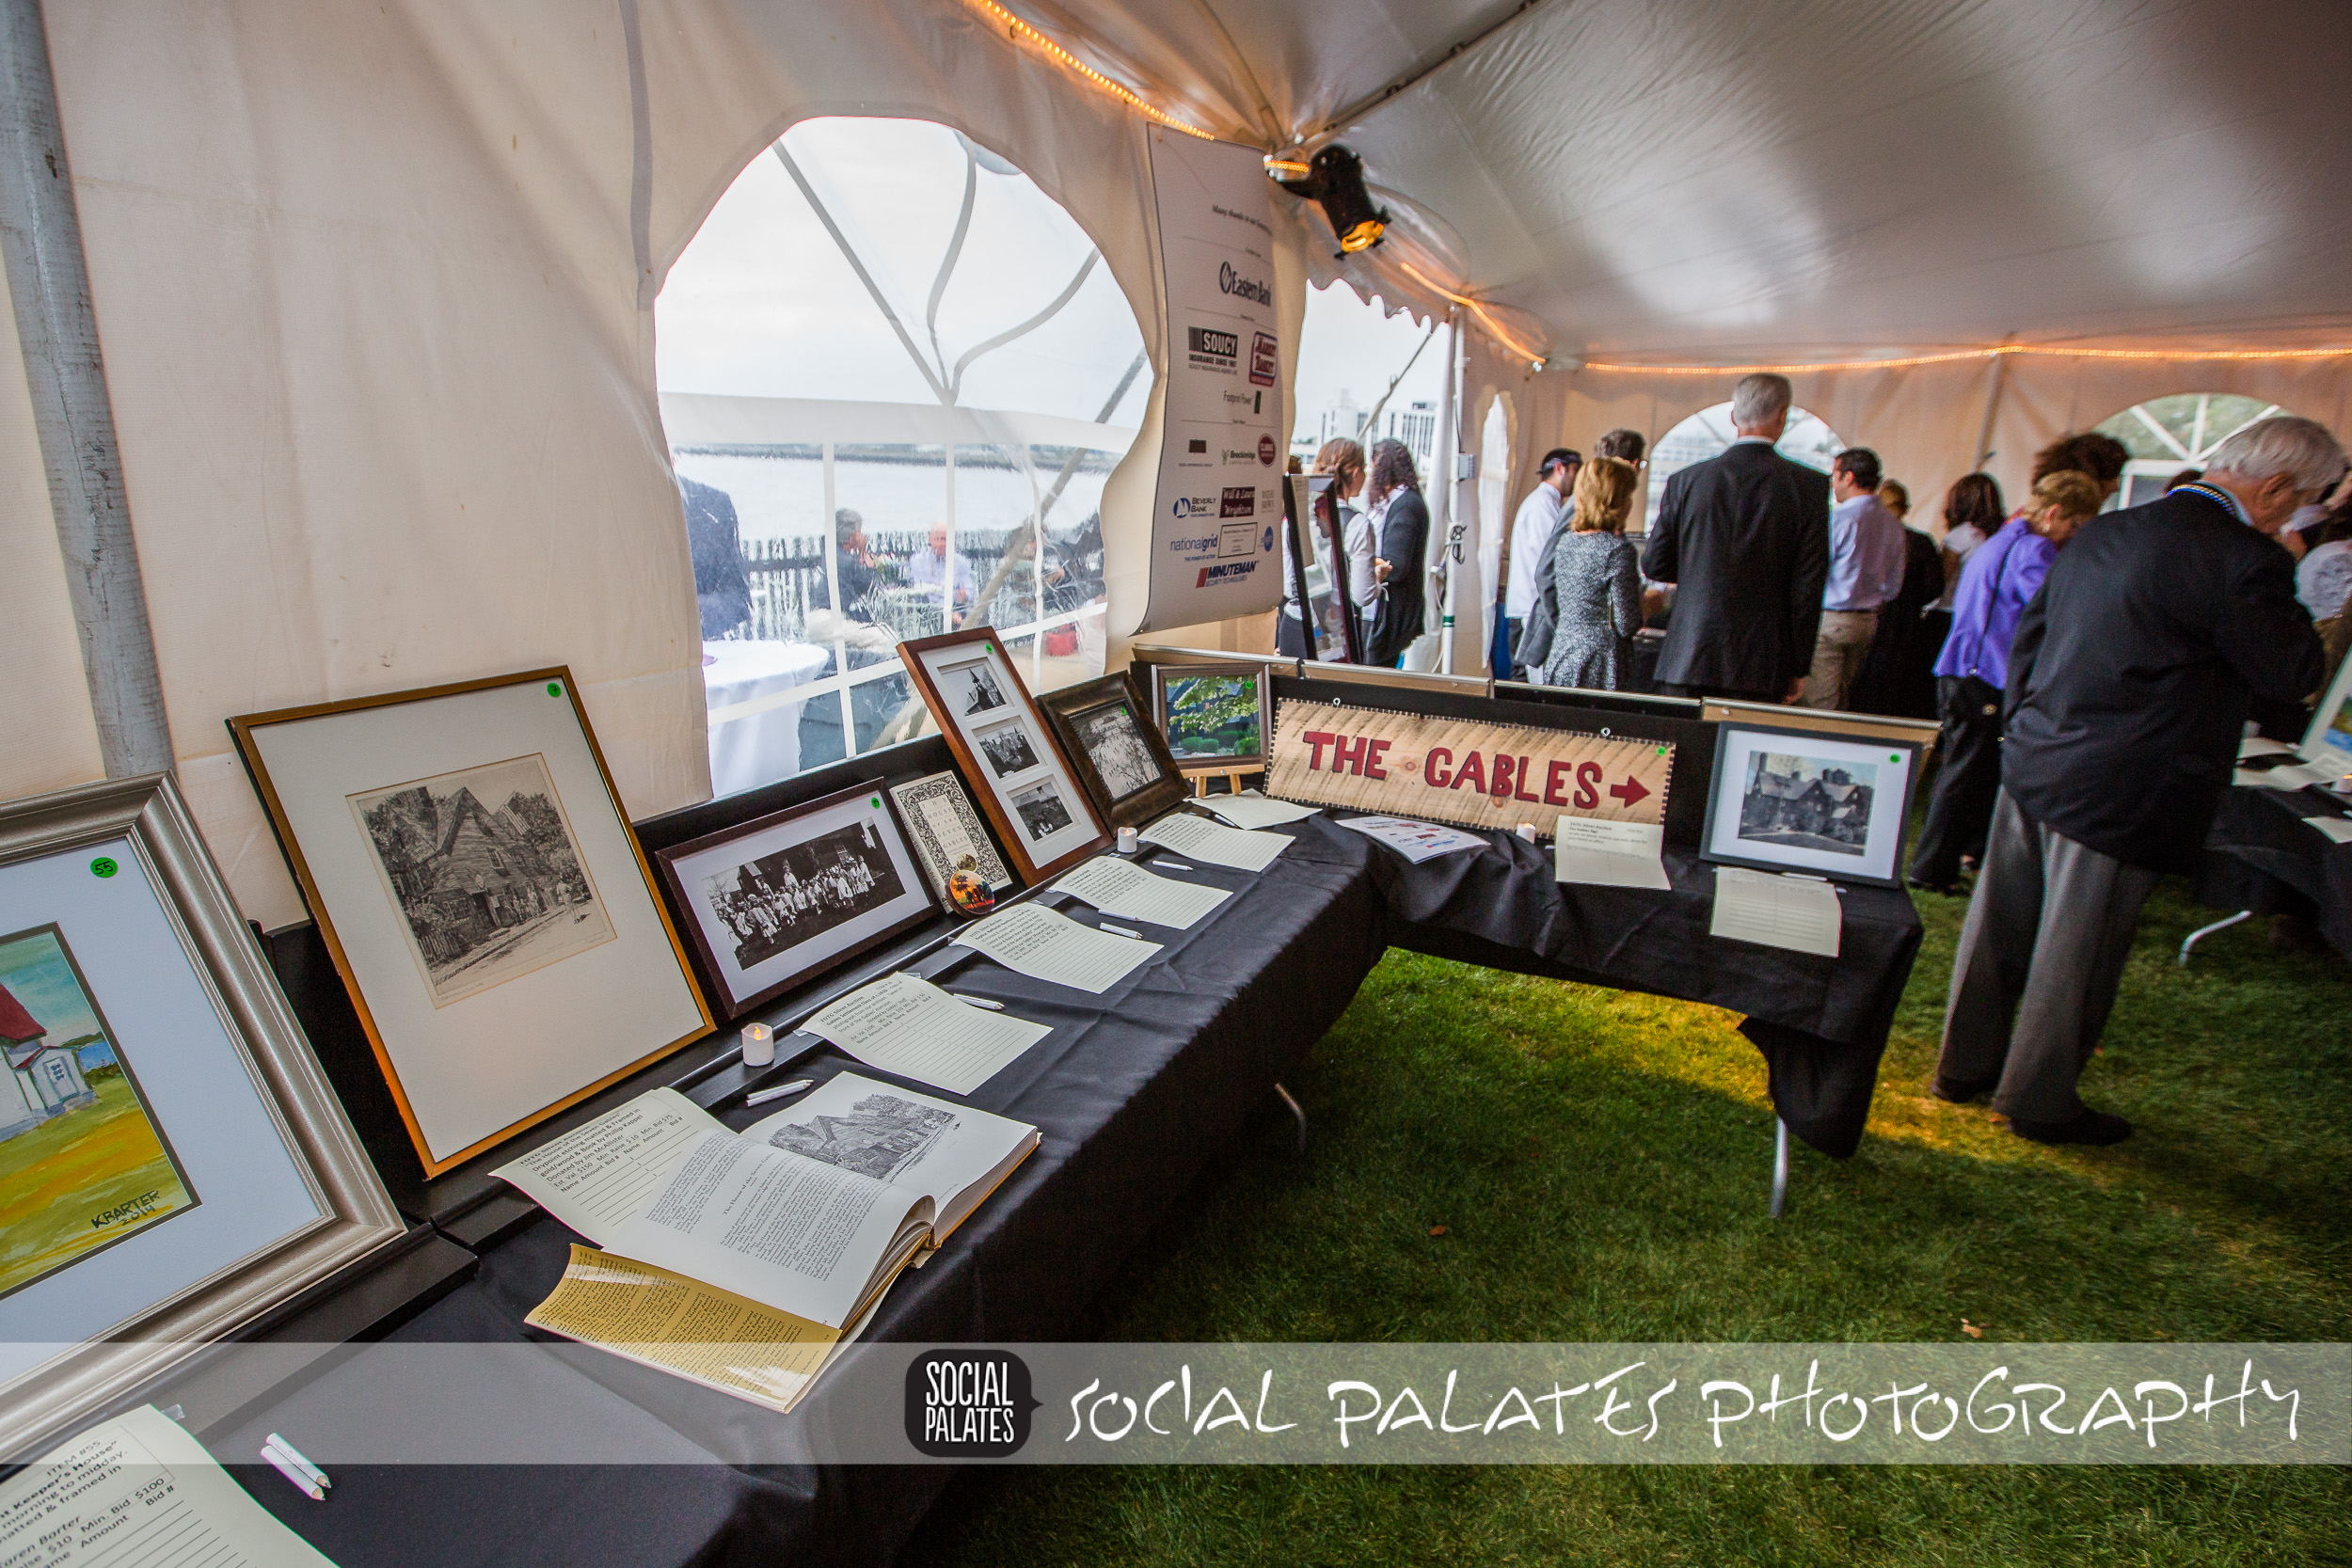 Taste_of_the_gables_2014-4788.jpg